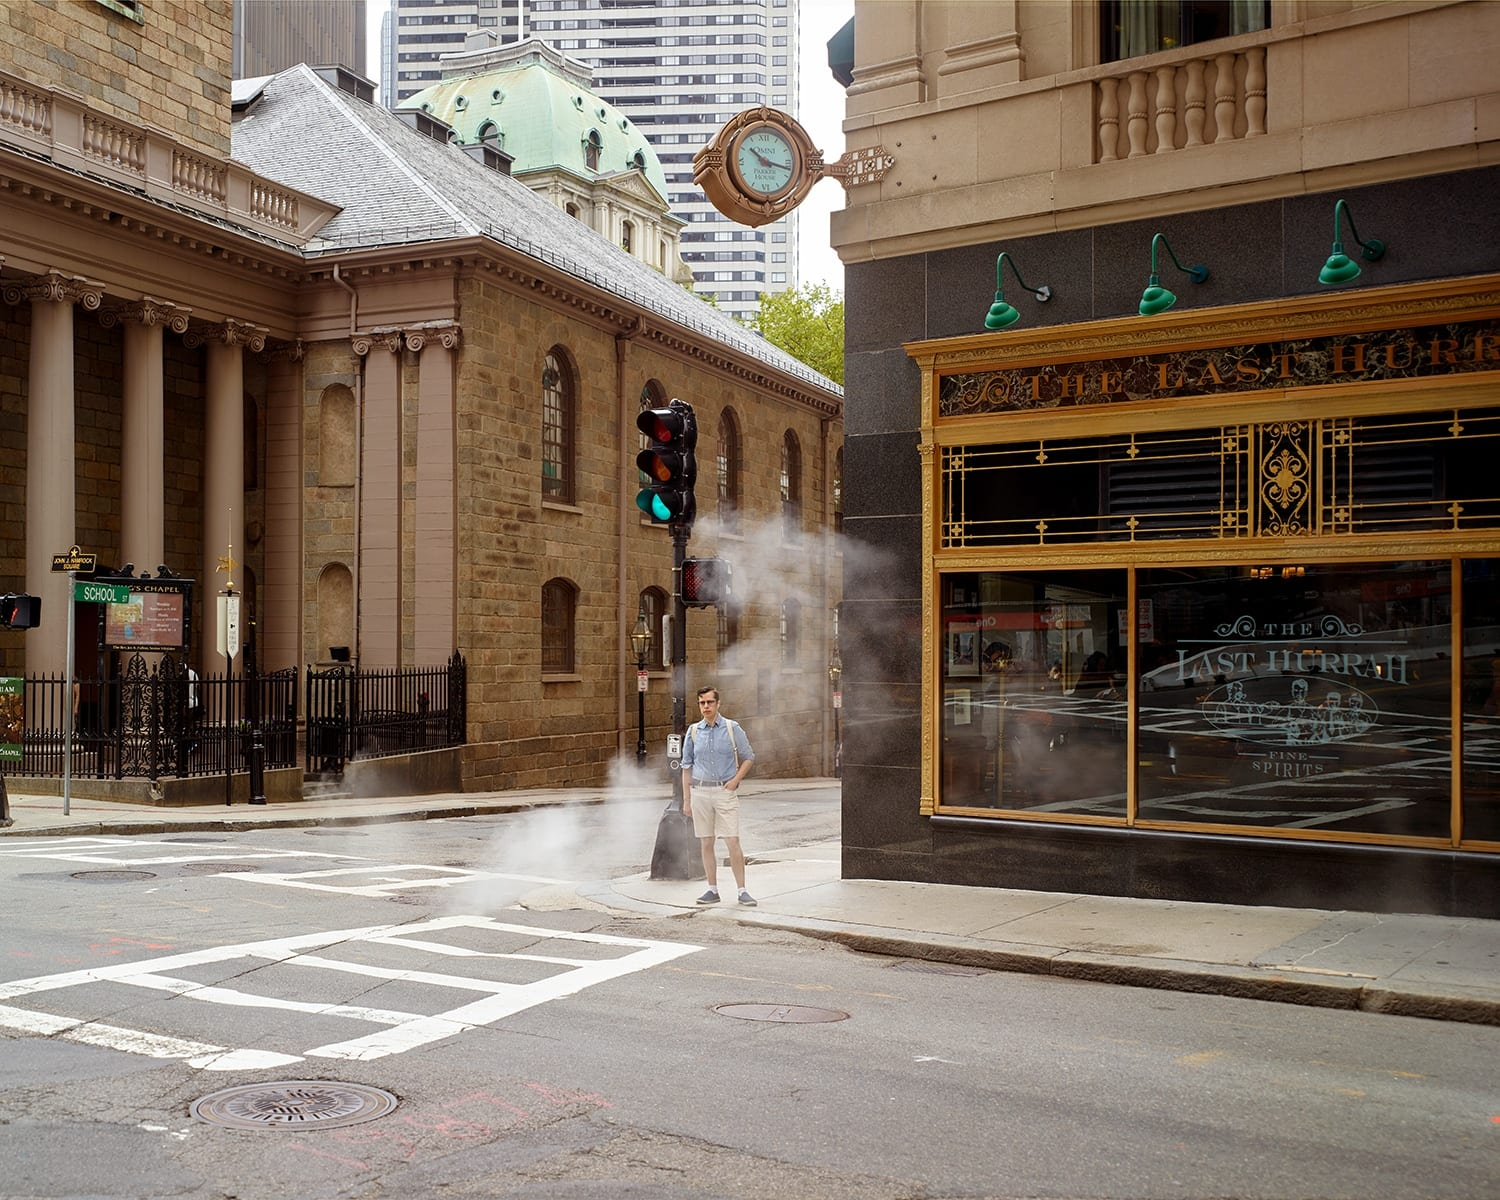 Oli Kellett Tremont St, Boston - HackelBury Fine Art London - photograph of man in blue shirt and shorts waiting at corner behind smoke